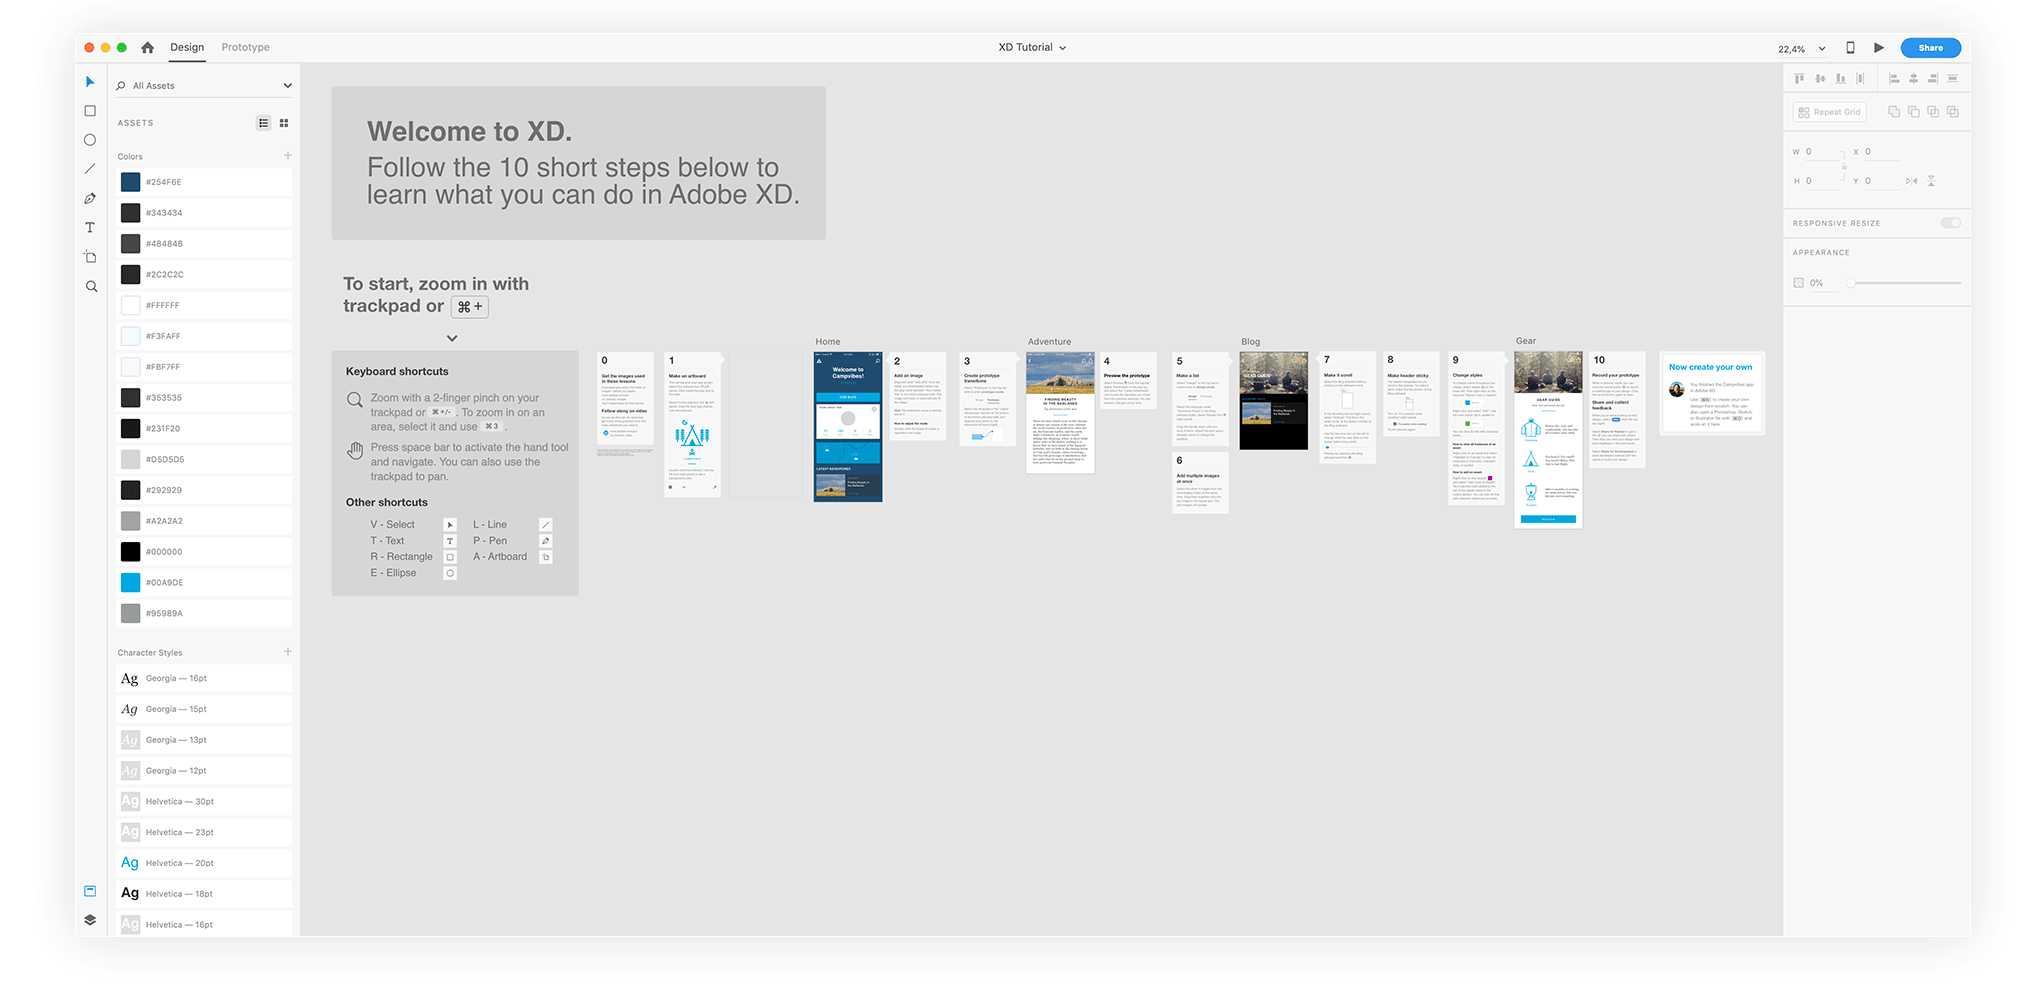 Adobe XD quick tutorial that will get you to learn how to use this application in less than 1 hour